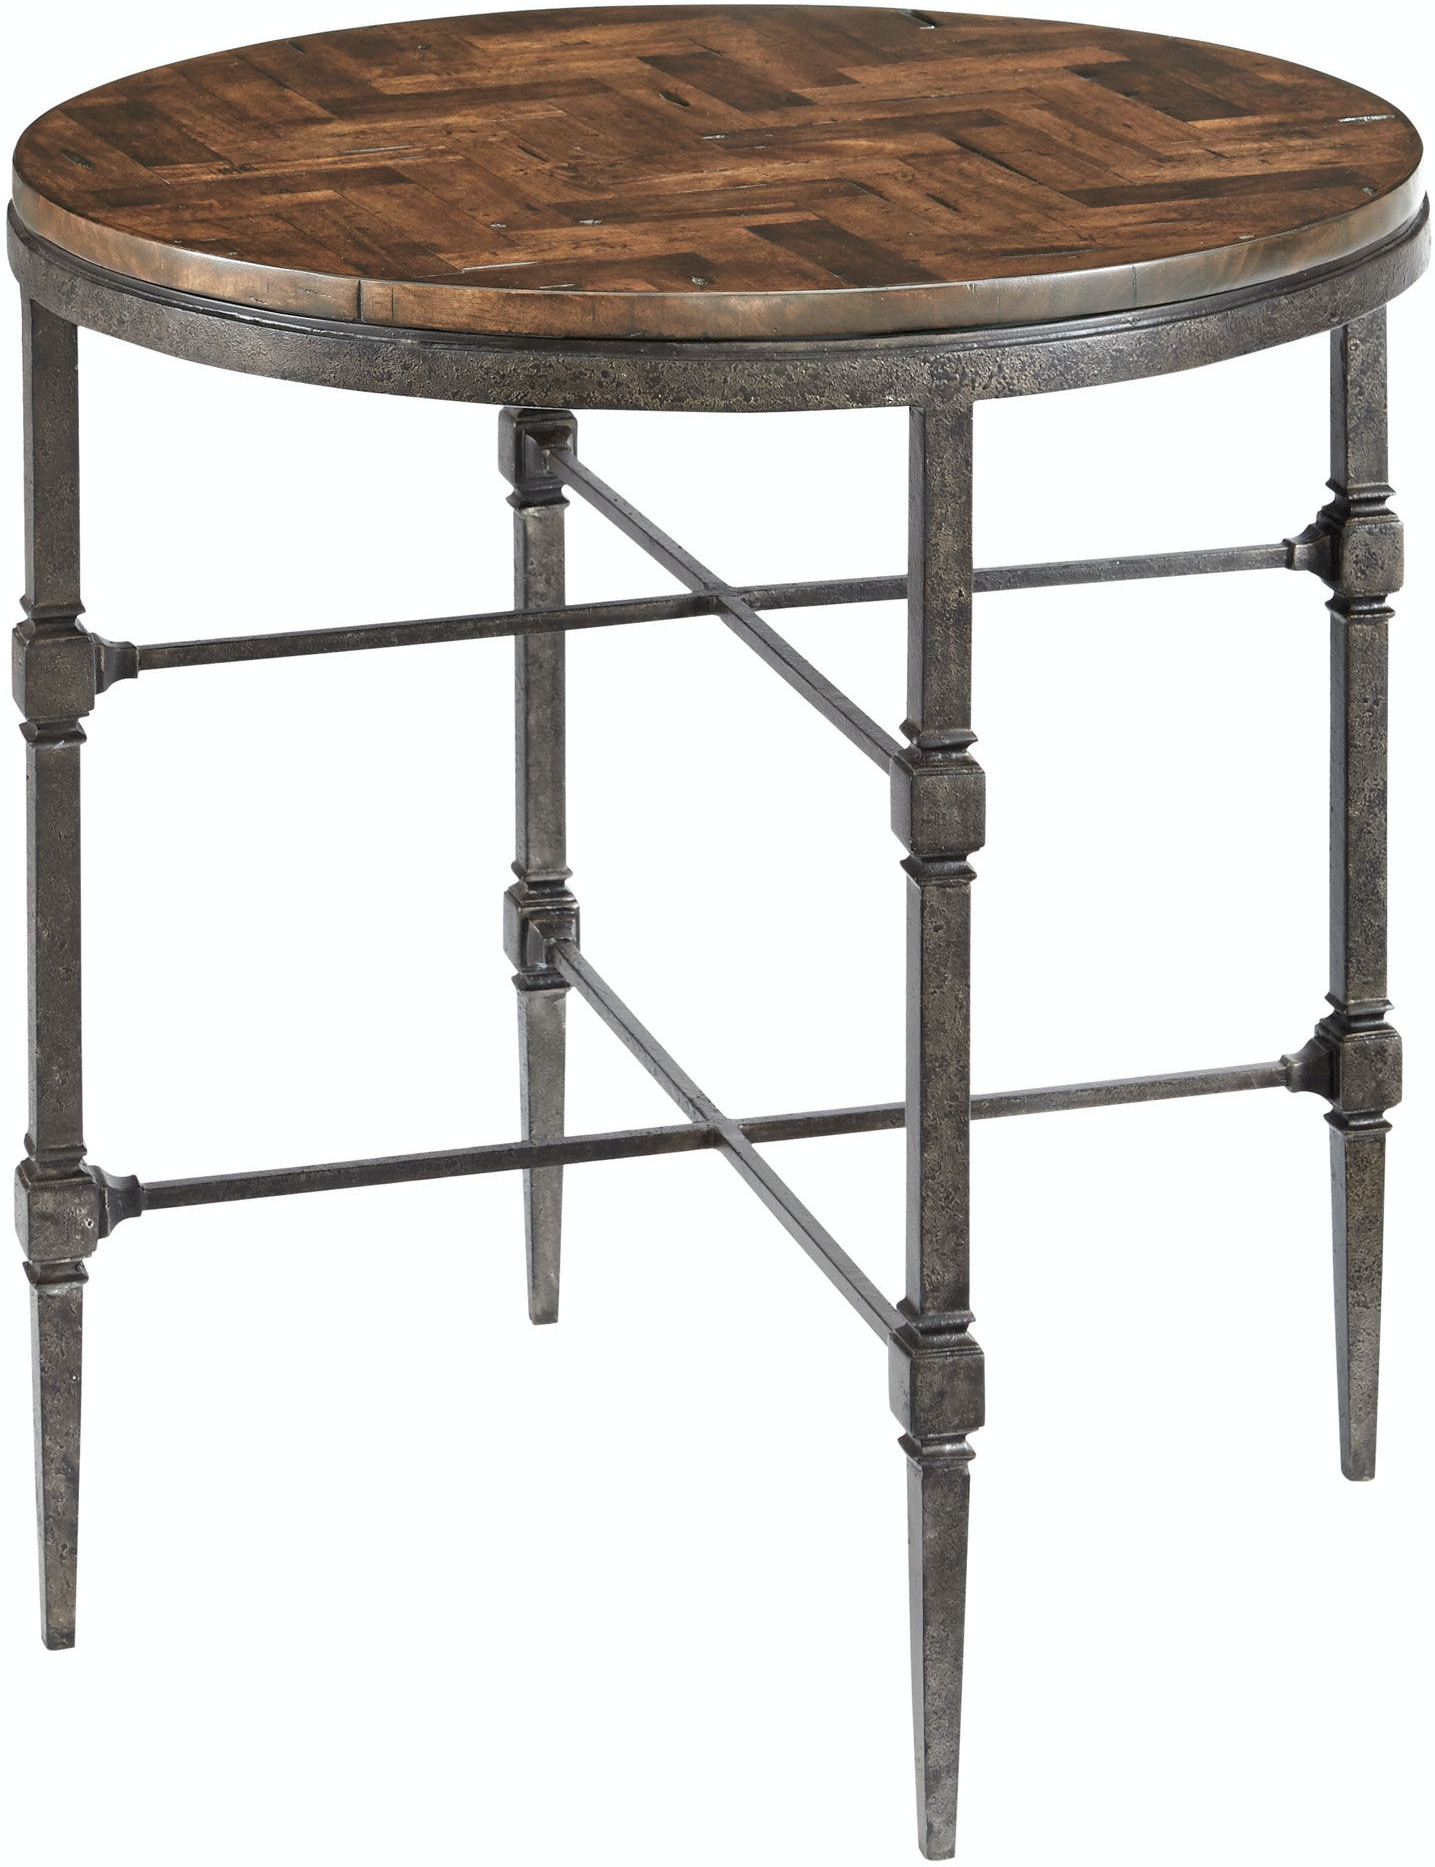 Bernhardt Living Room End Table With Wood Top And Metal